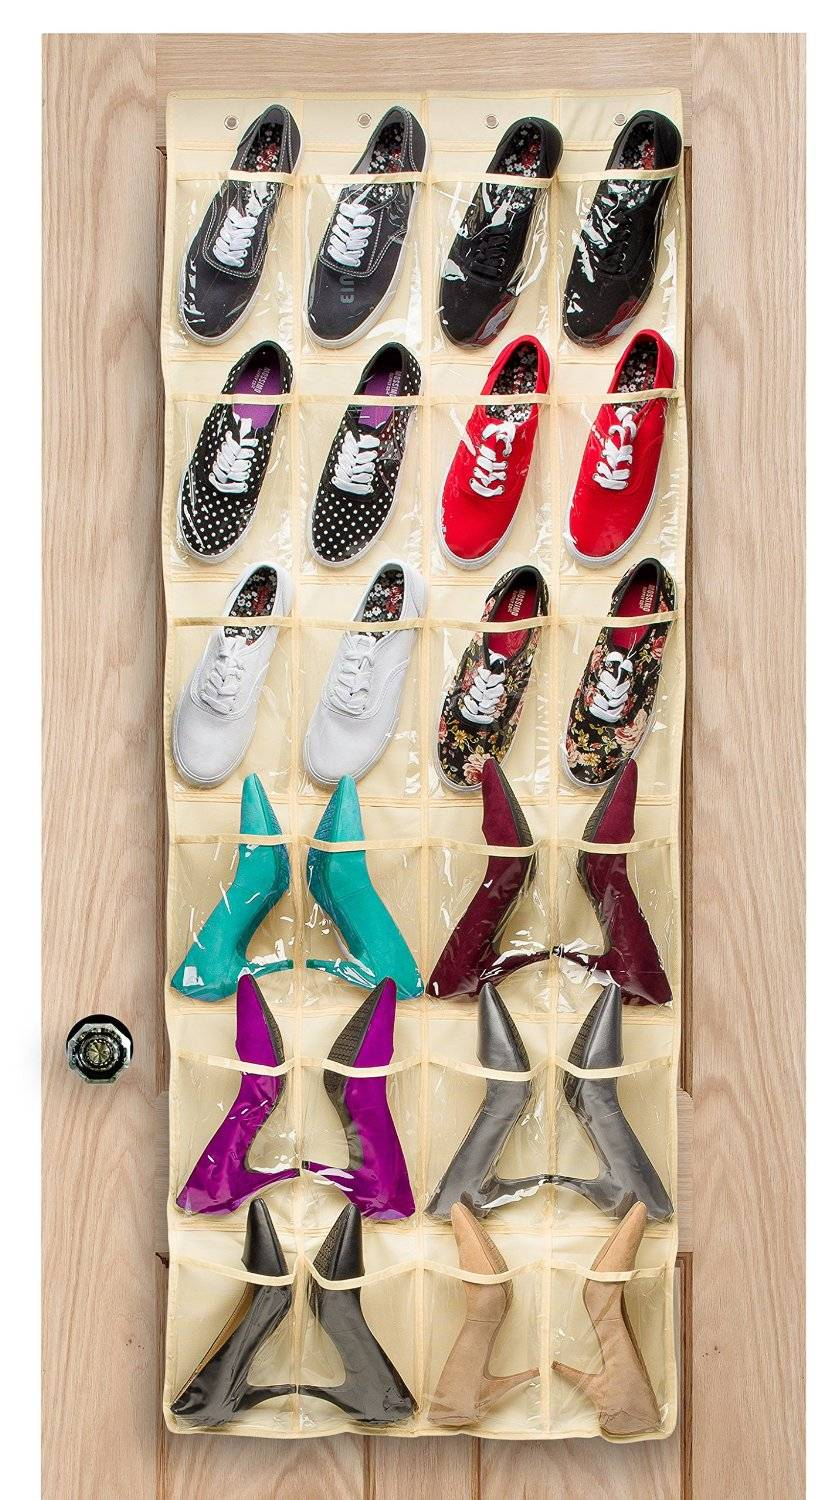 24 Pockets - Crystal Clear Over the Door Hanging Shoe Organizer